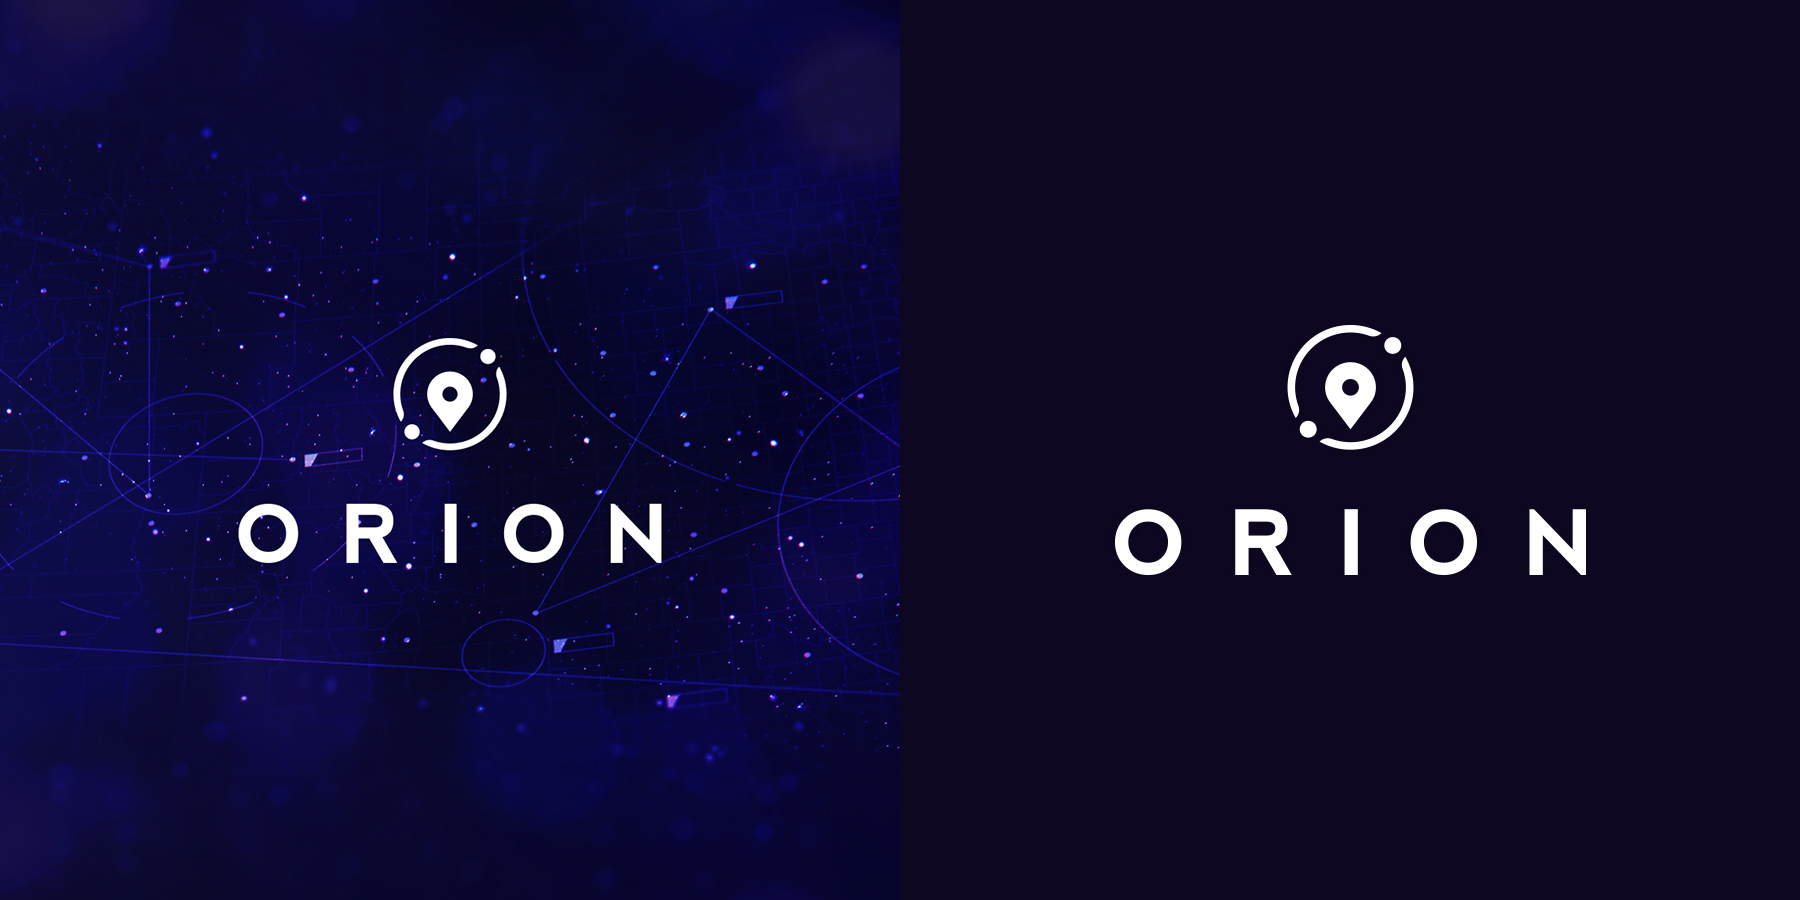 'Orion'